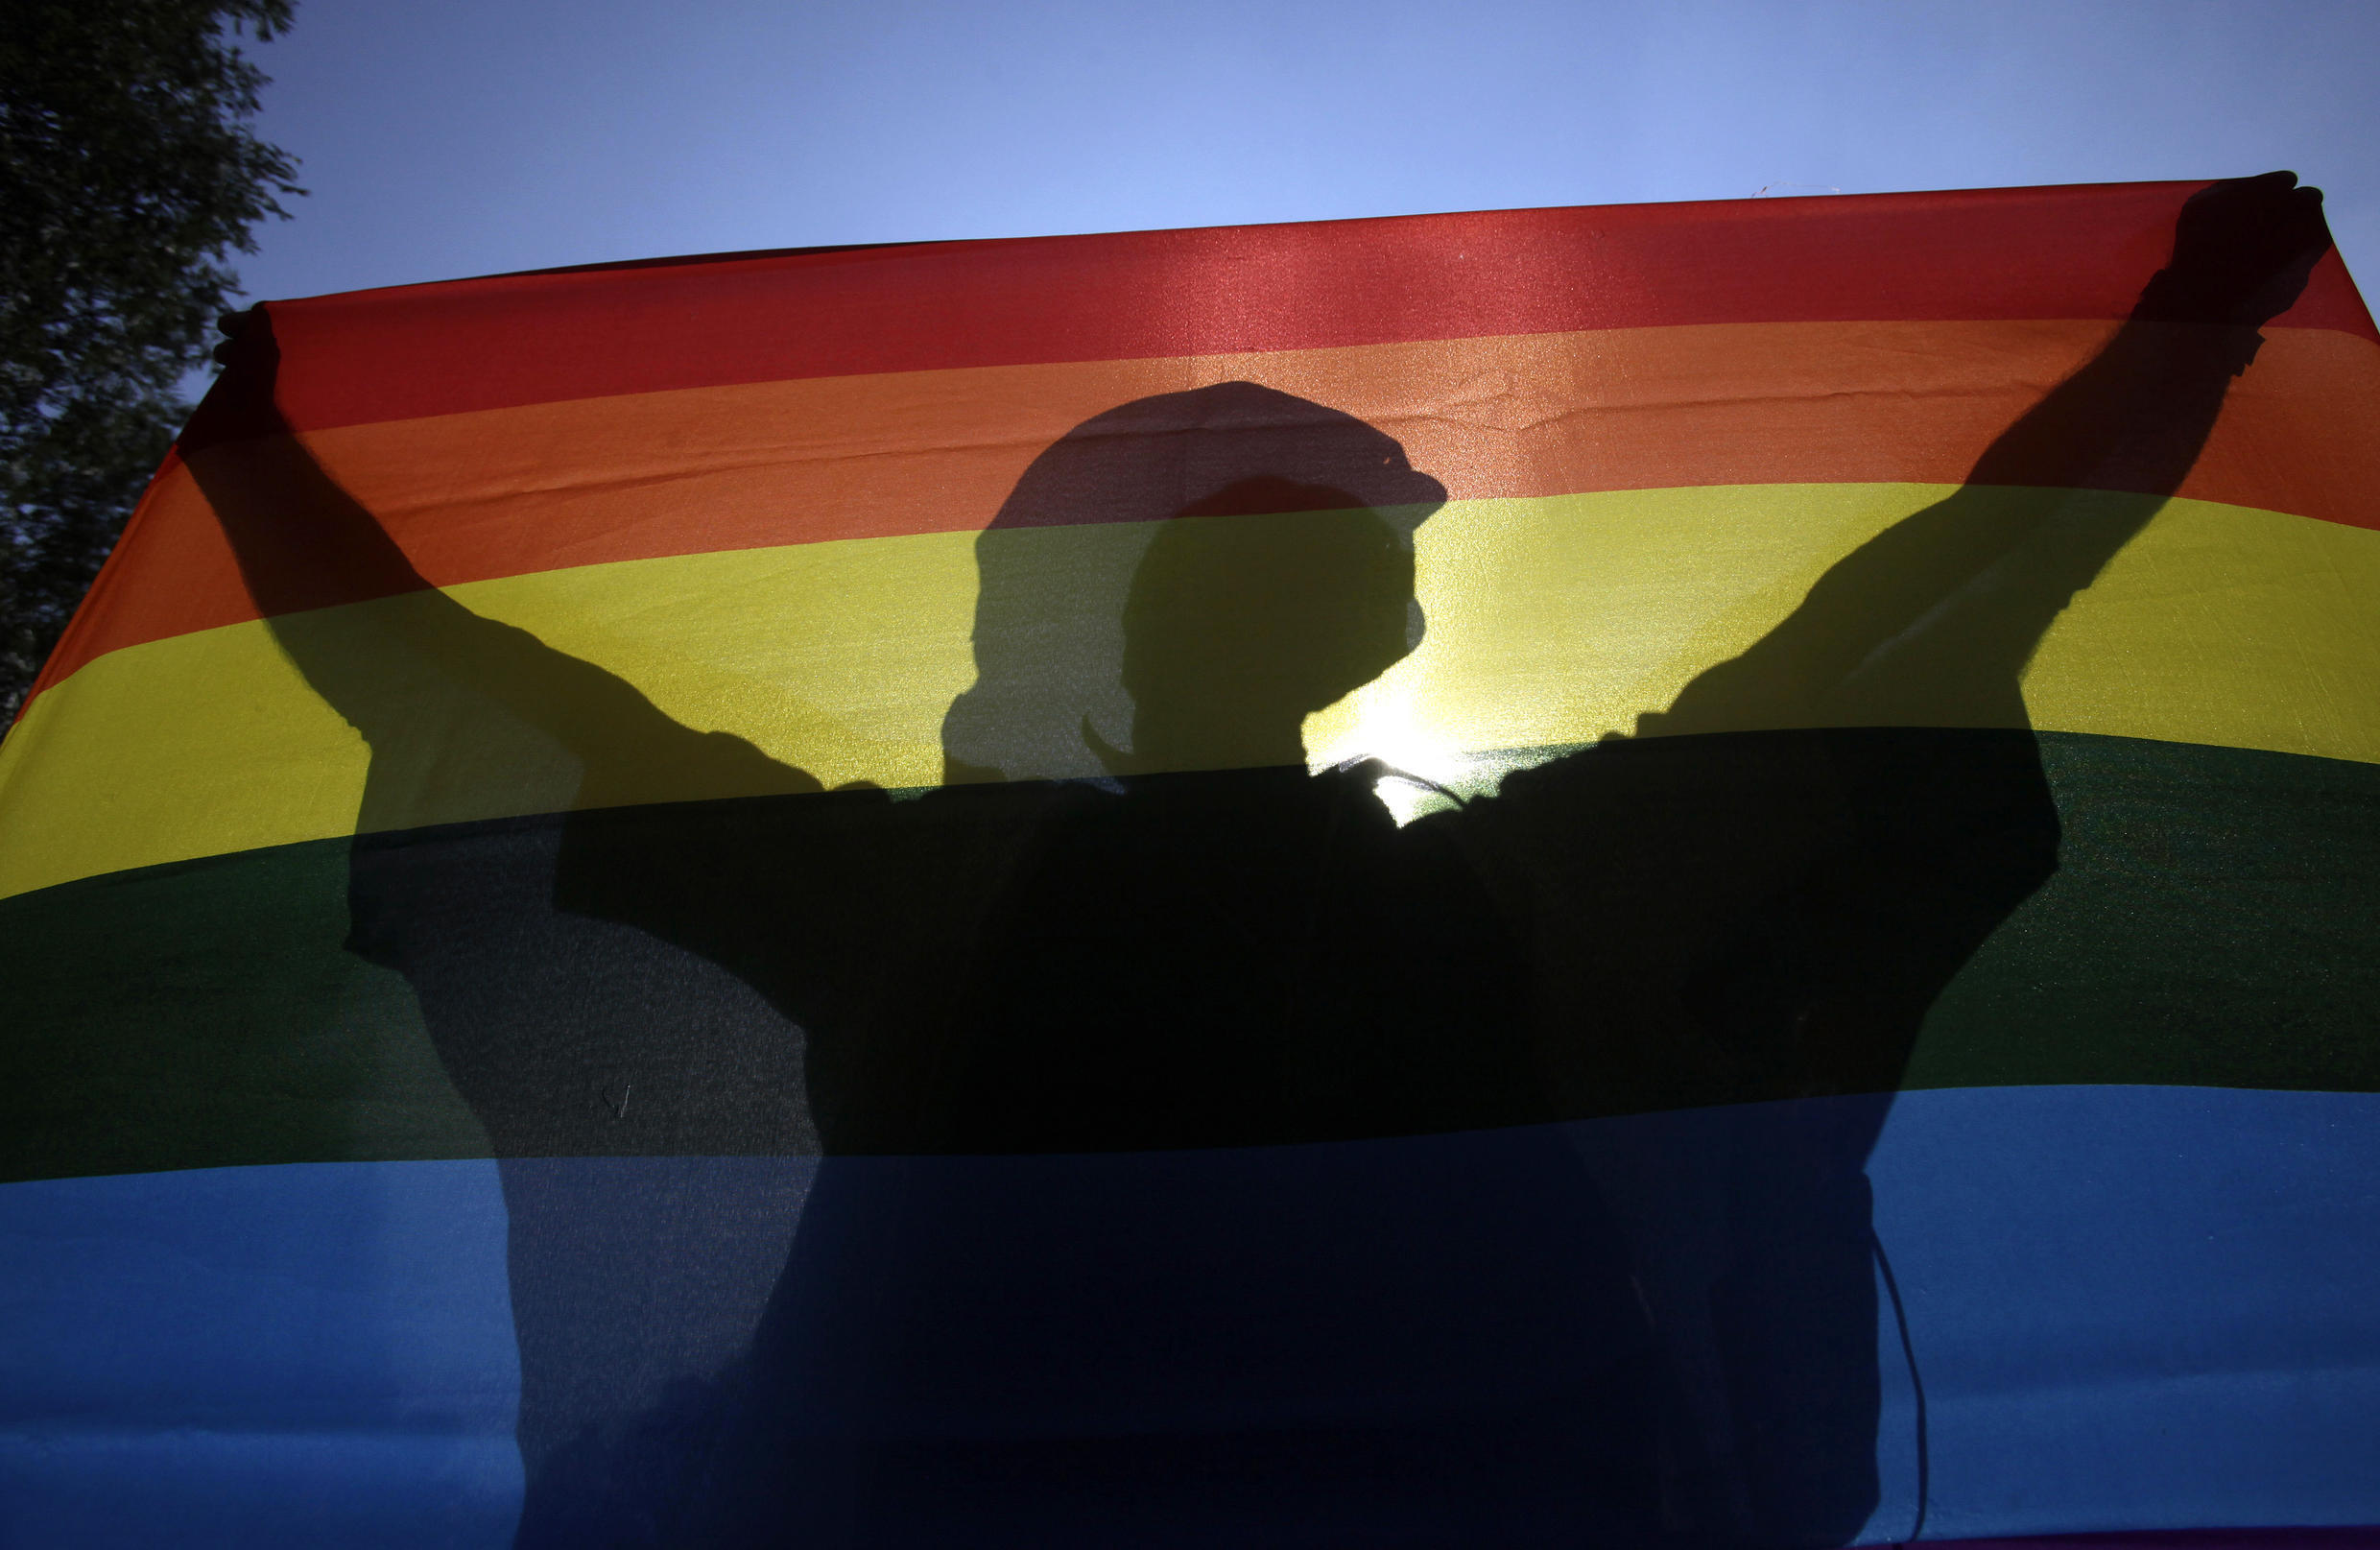 Hungary's beleaguered LGBTQ community faces more restrictions